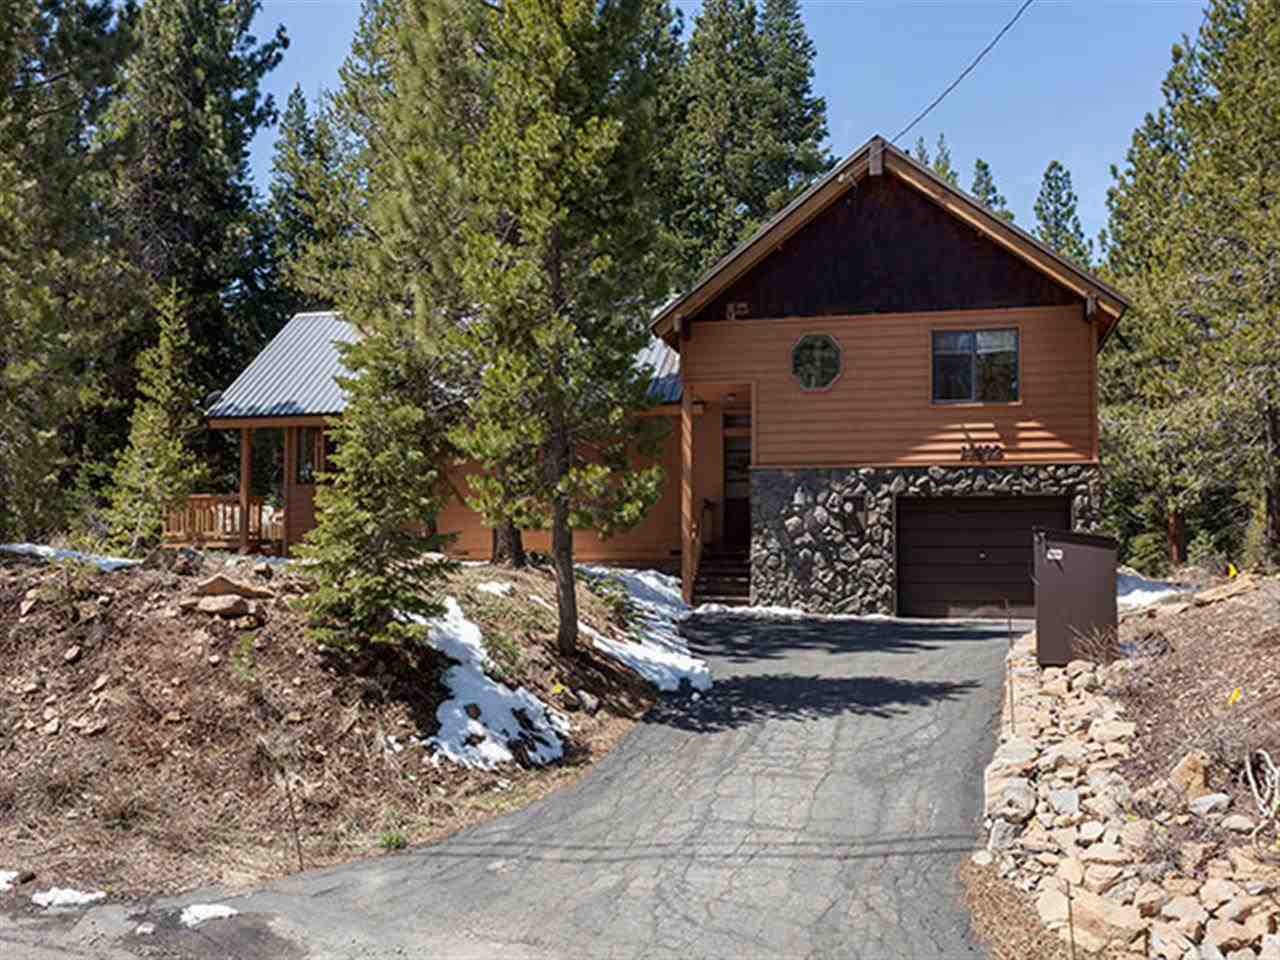 Single Family Home for Active at 14492 Tyrol Road 14492 Tyrol Road Truckee, California 96161 United States